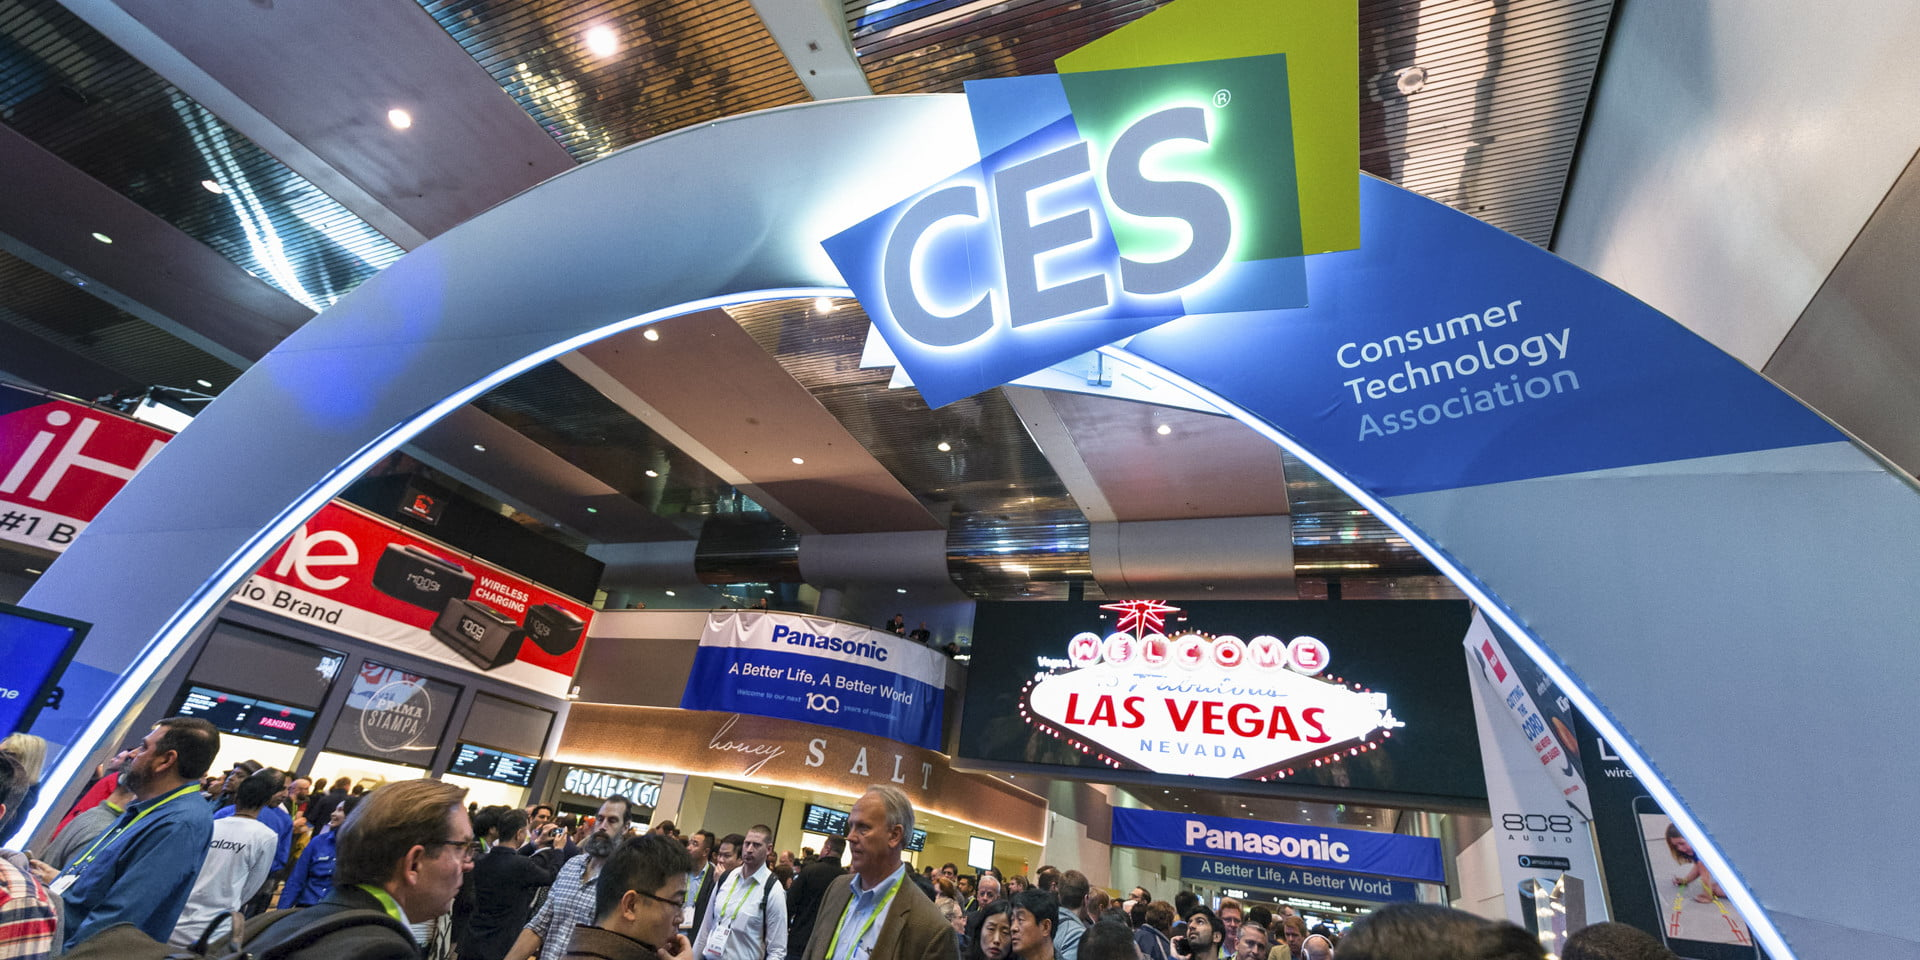 CES 2019: Tech trends to watch for at the consumer electronics show